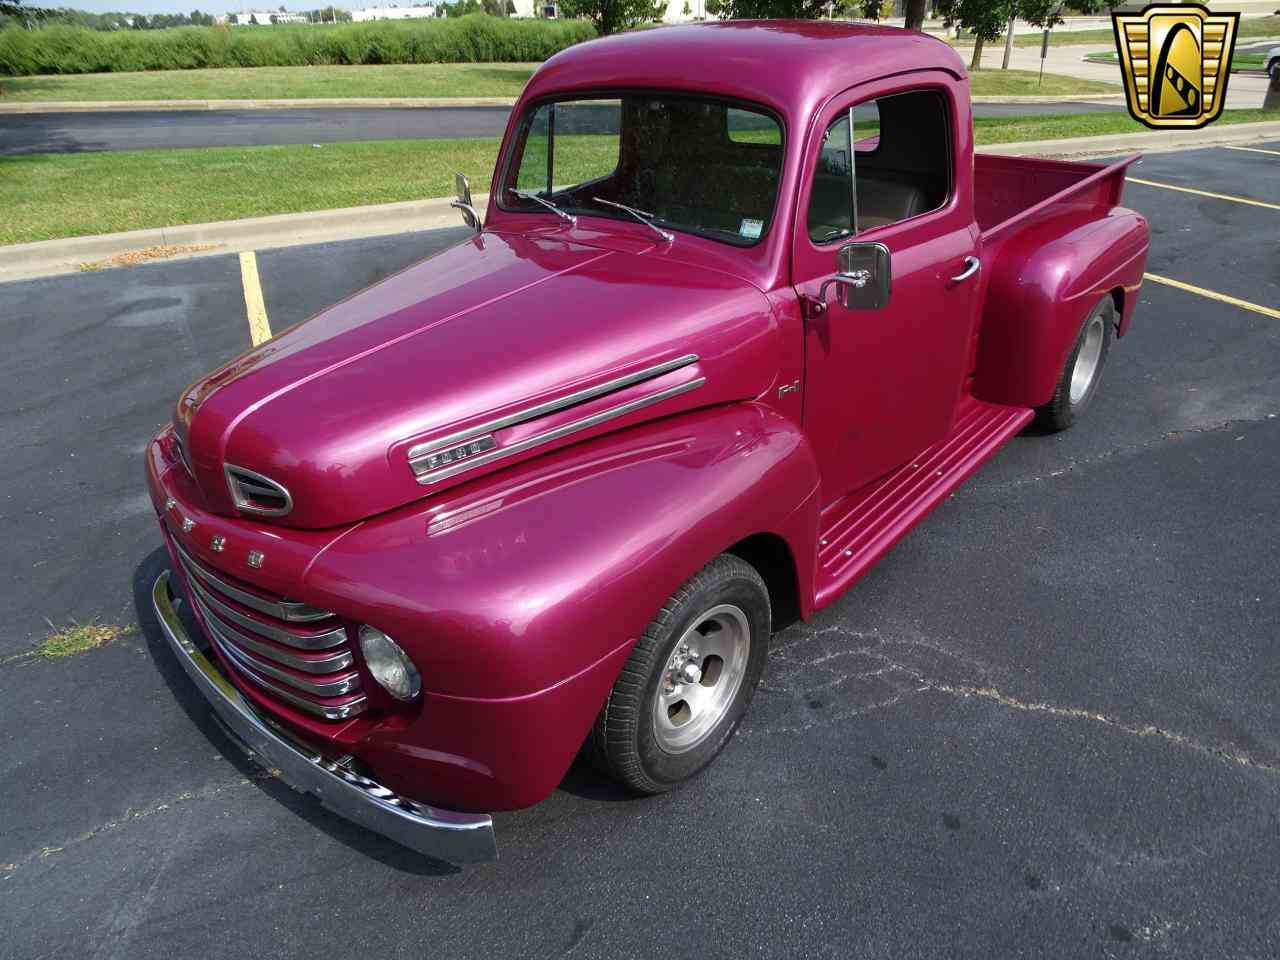 Large Picture of 1950 Ford Pickup located in O'Fallon Illinois Offered by Gateway Classic Cars - St. Louis - LVNS